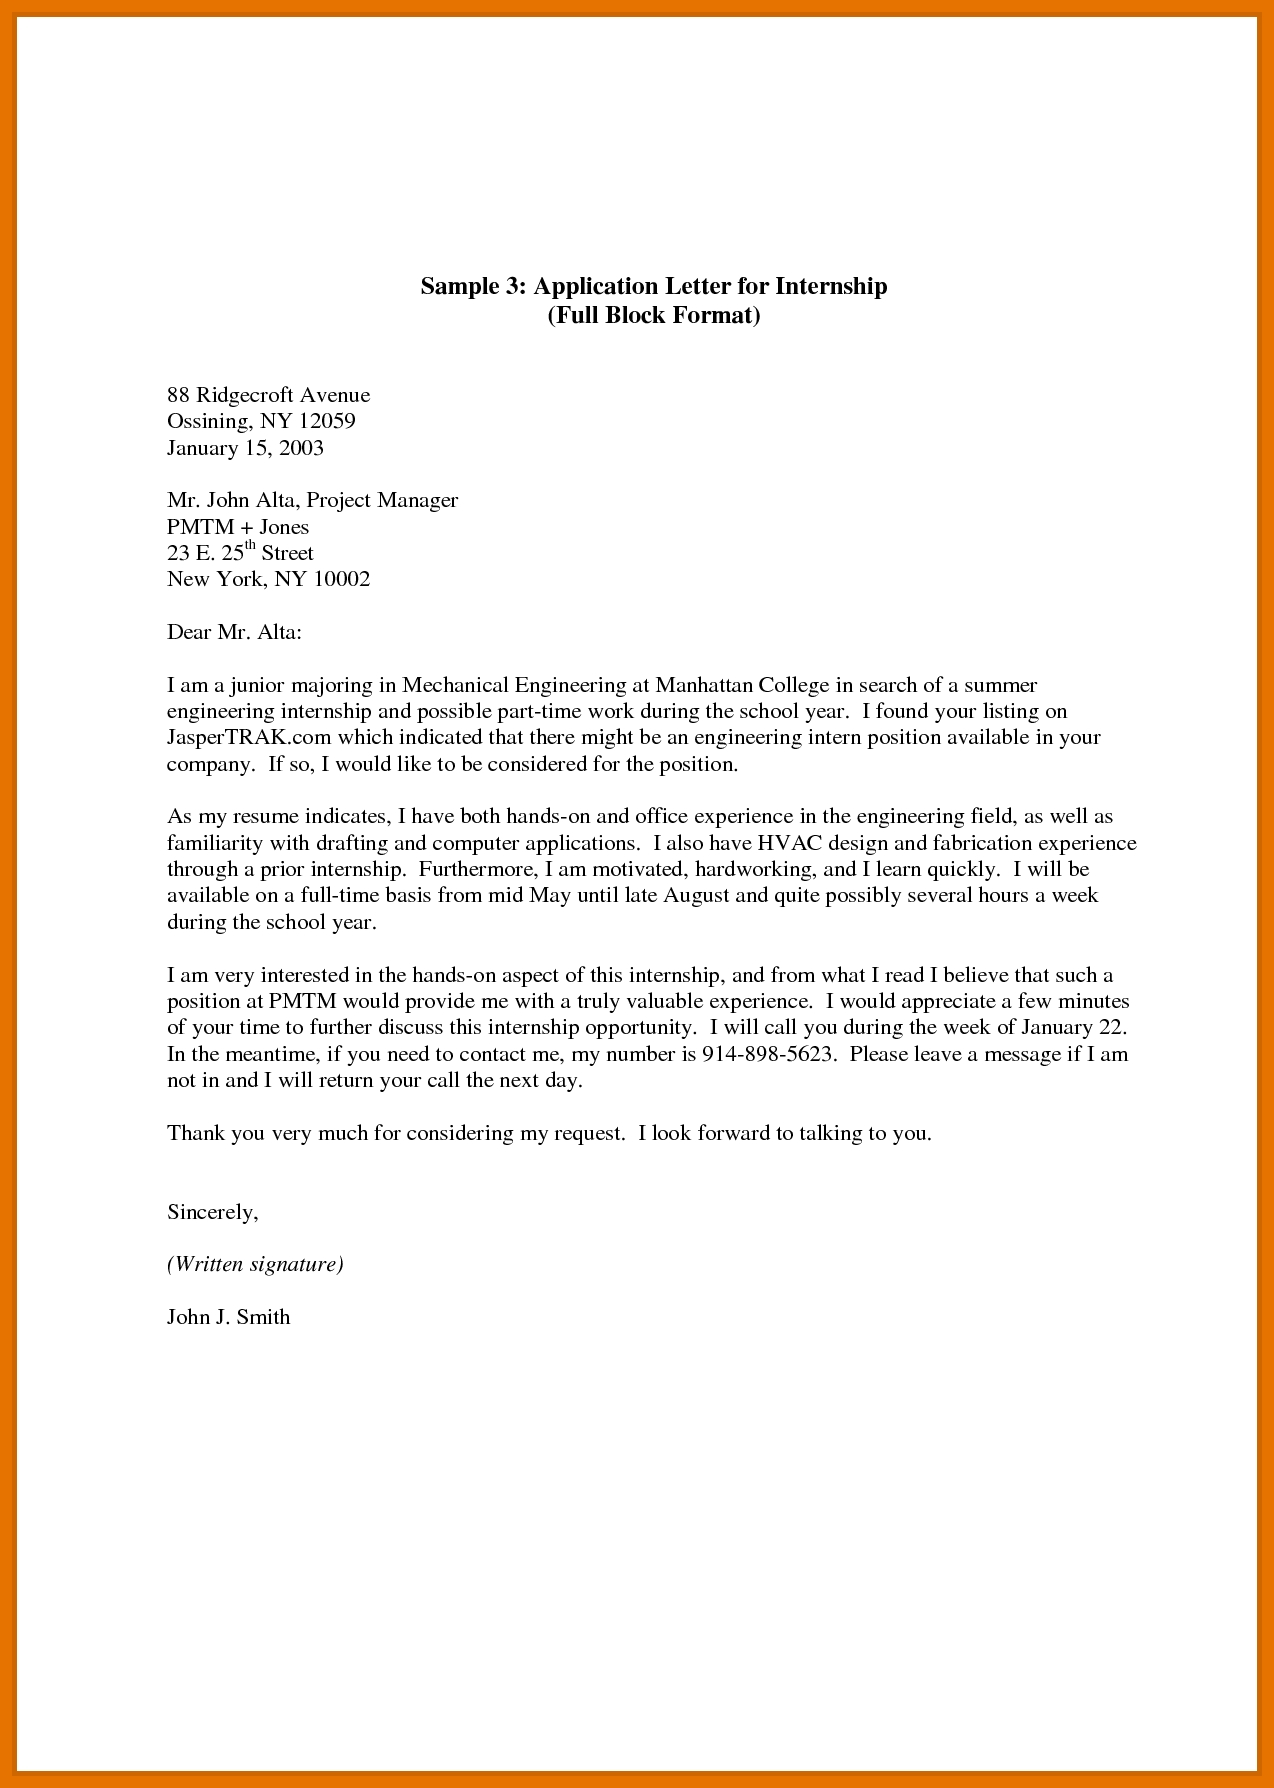 9+ Application Letter For It Students | Texas Tech Rehab Counseling throughout Application Format For Students 23376